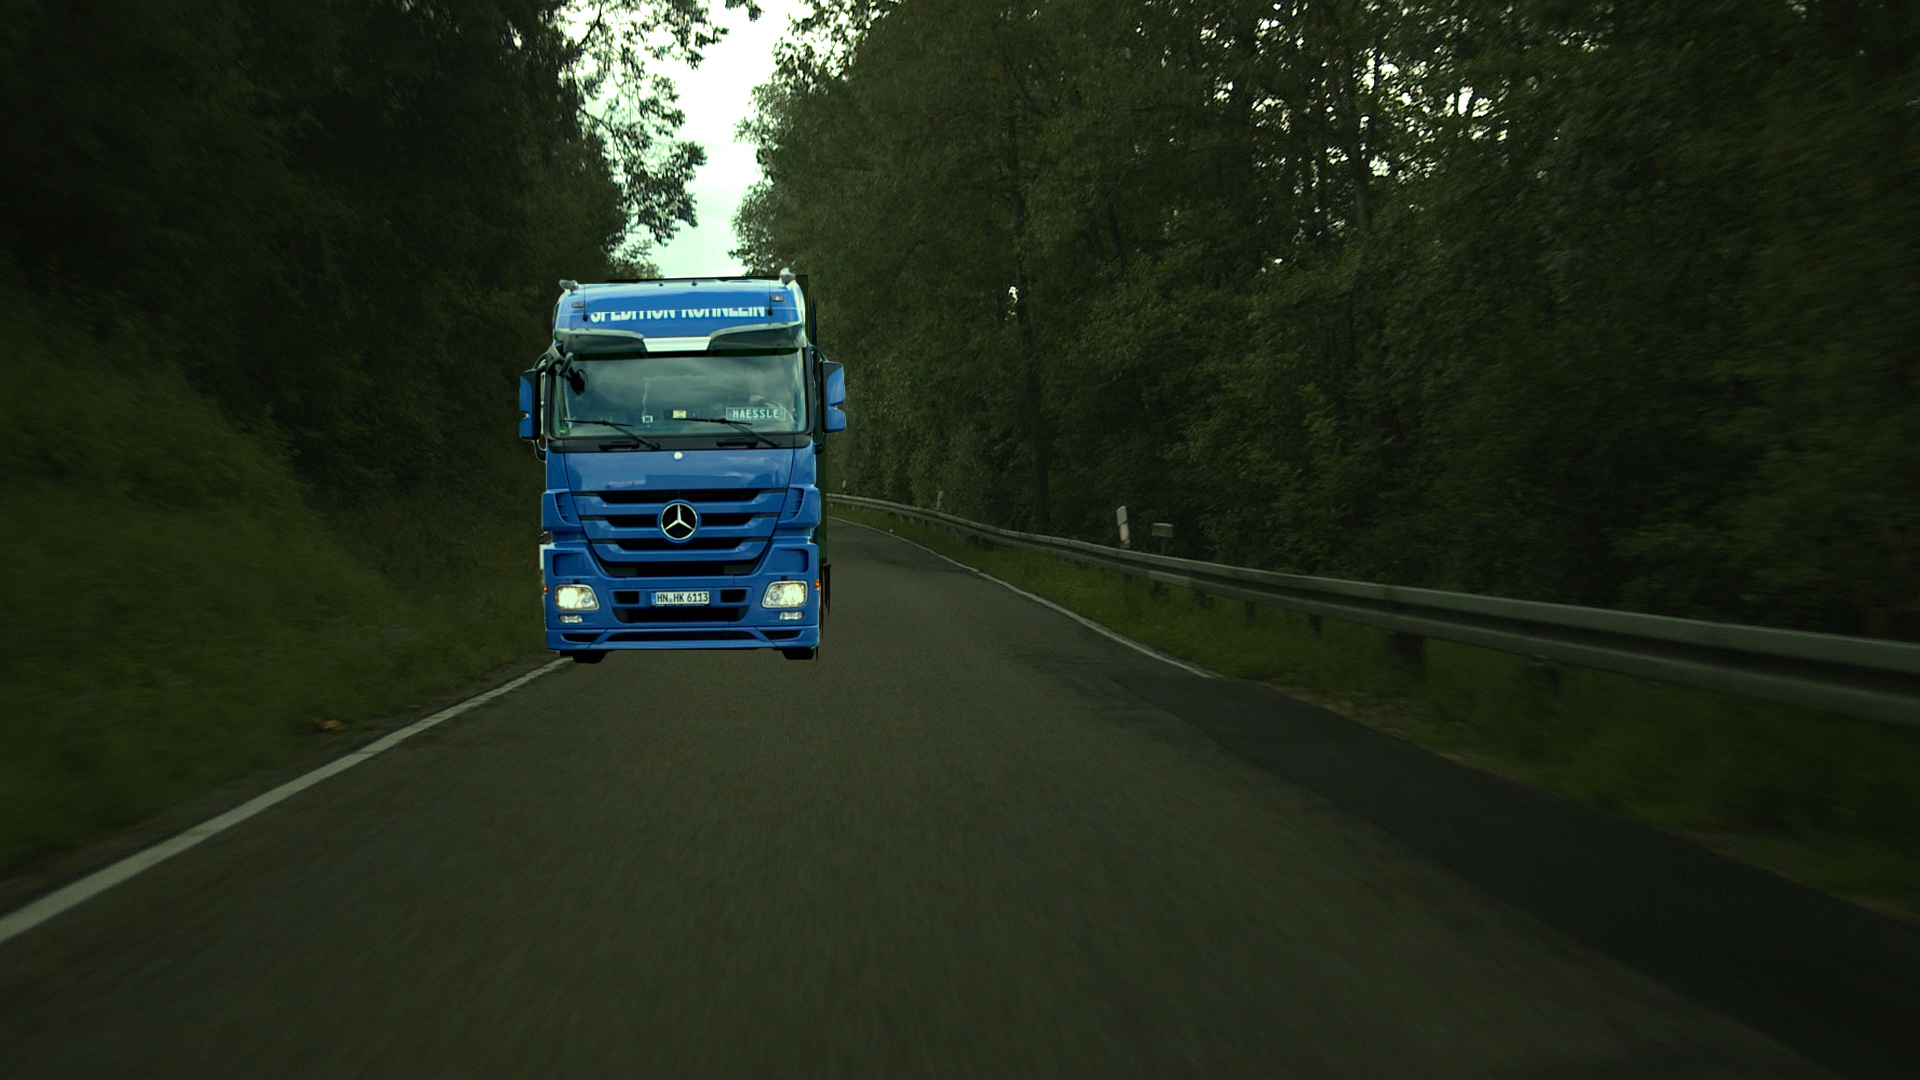 3D-Motortruck in the Background-Layer after the color-correction